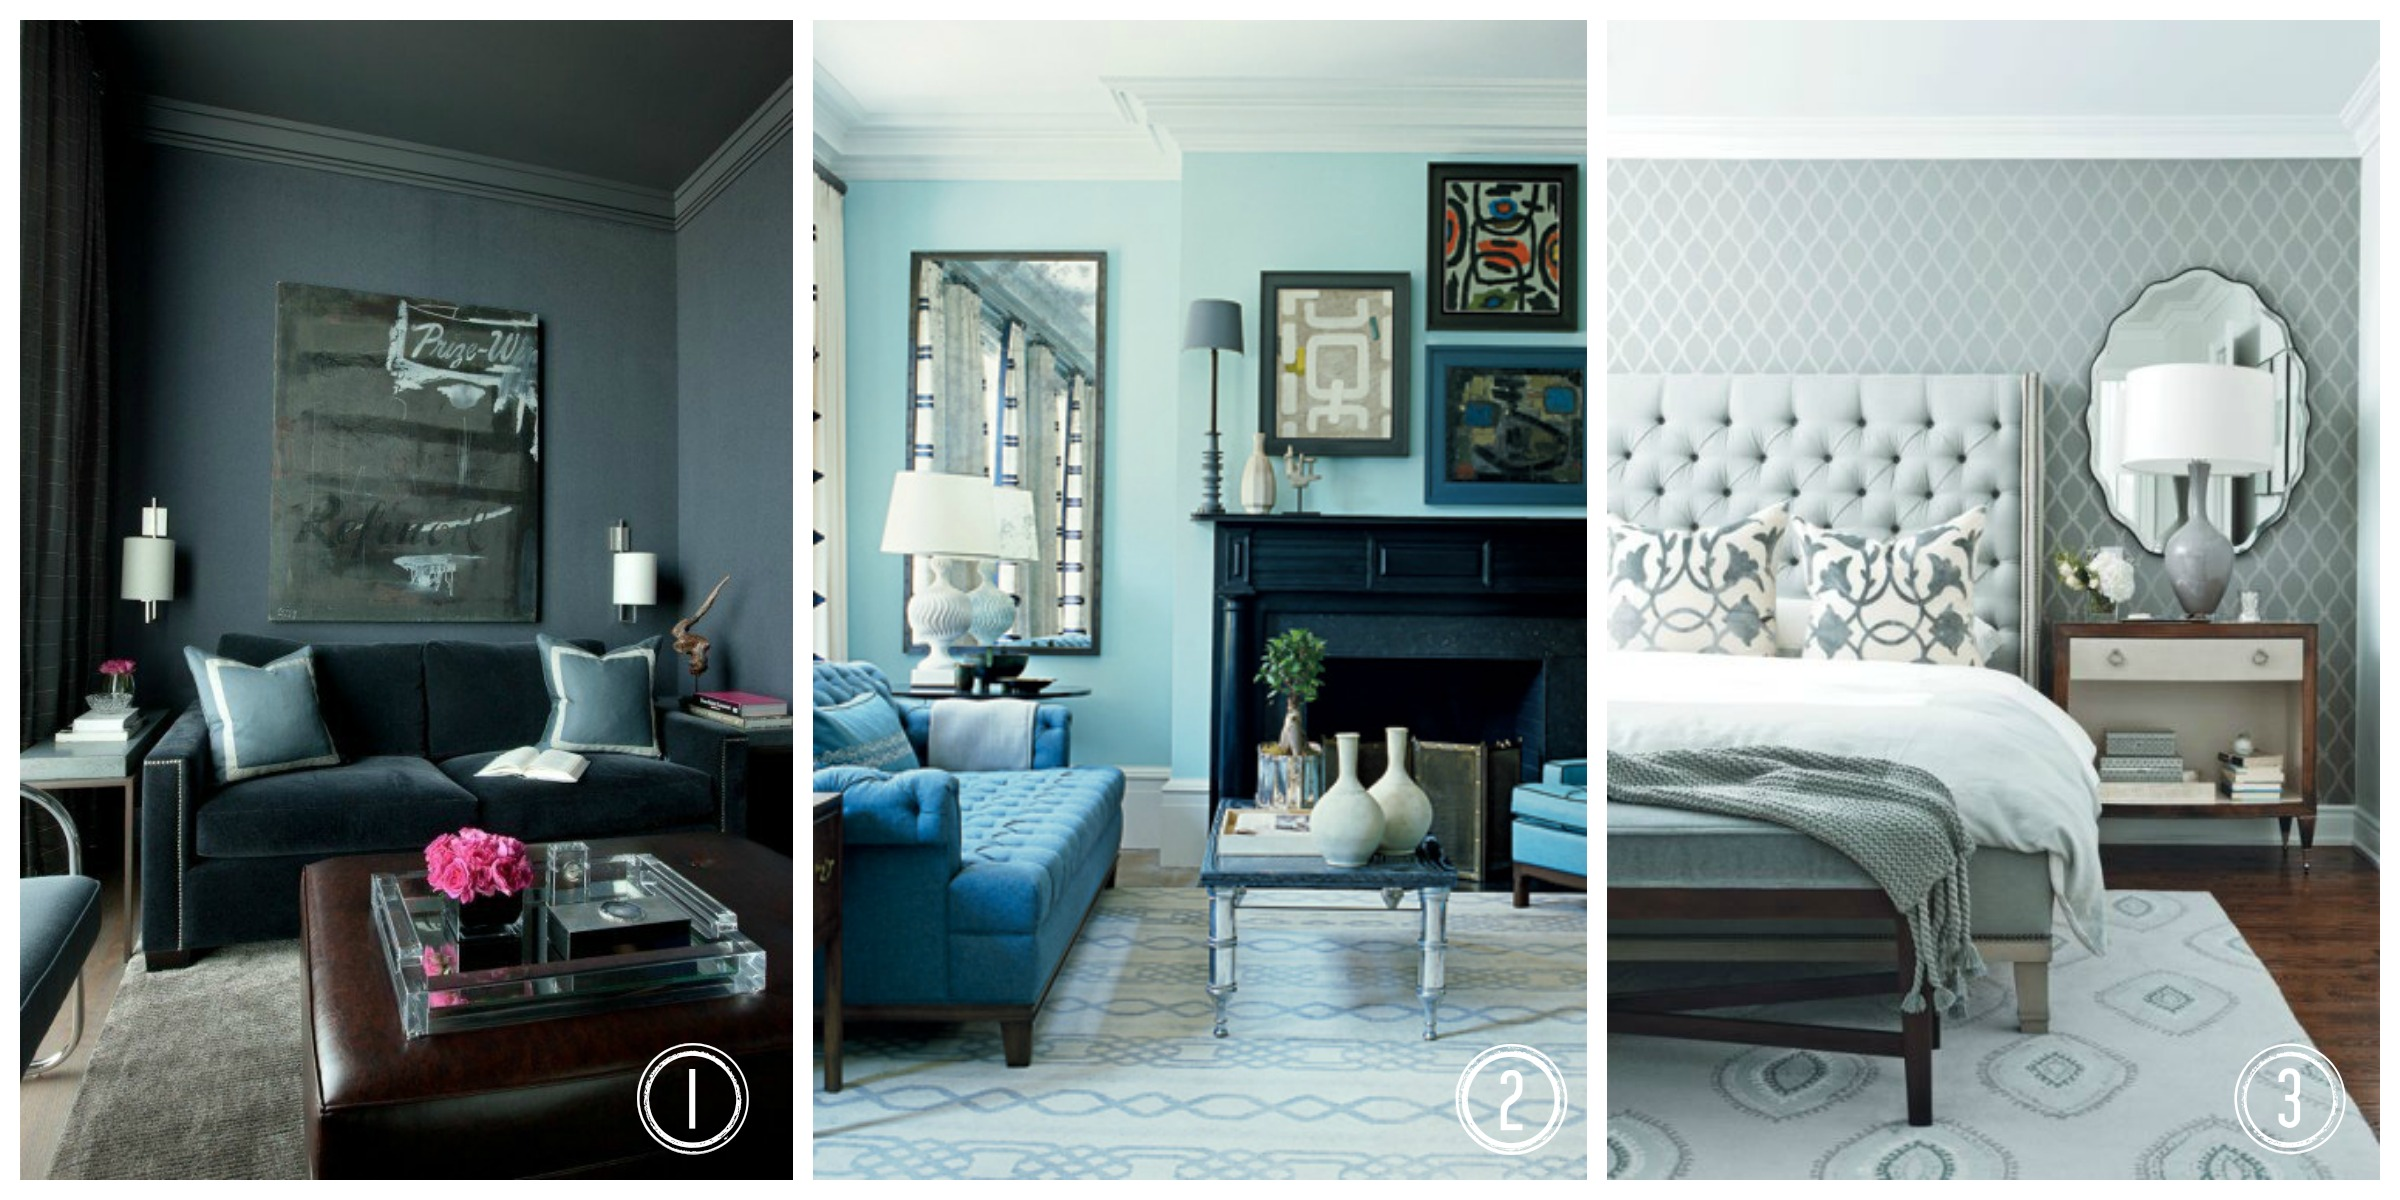 Best 25 Living Room Colors Ideas On Pinterest Living: what colors go good together for a room